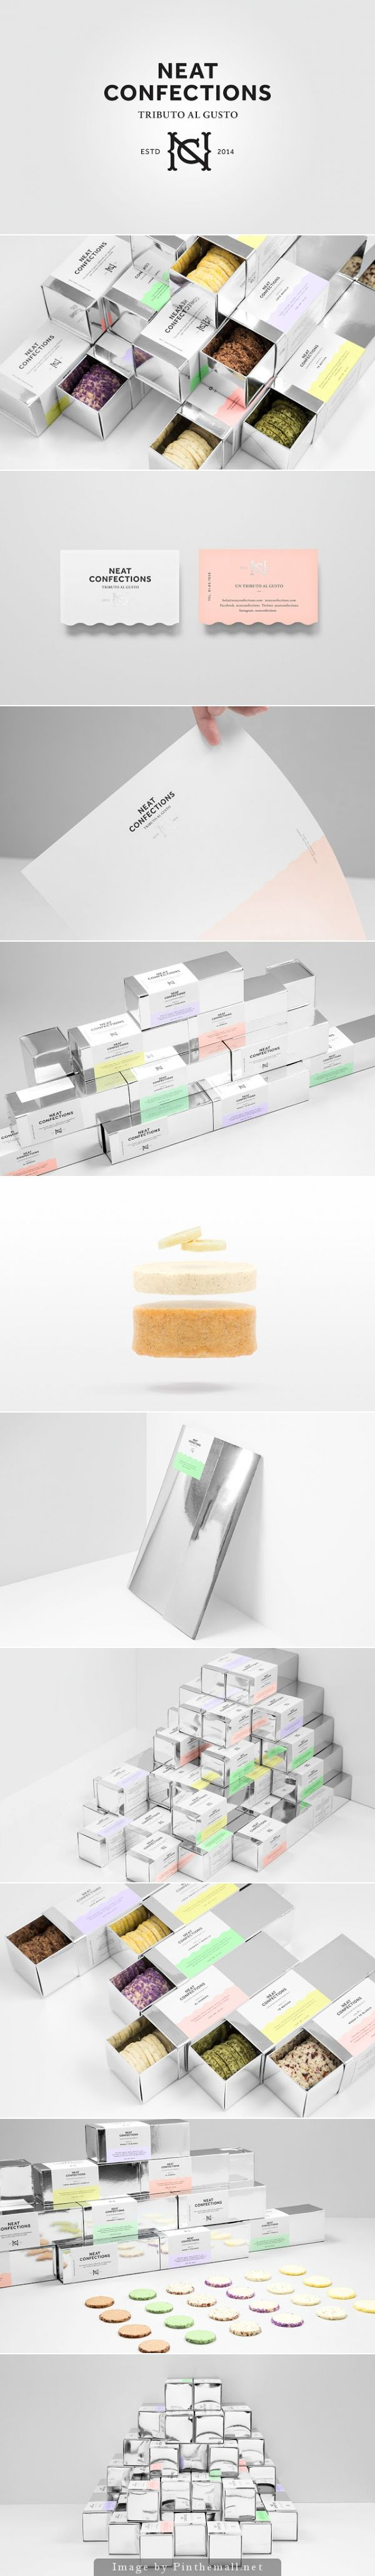 Neat Confections by Anagrama